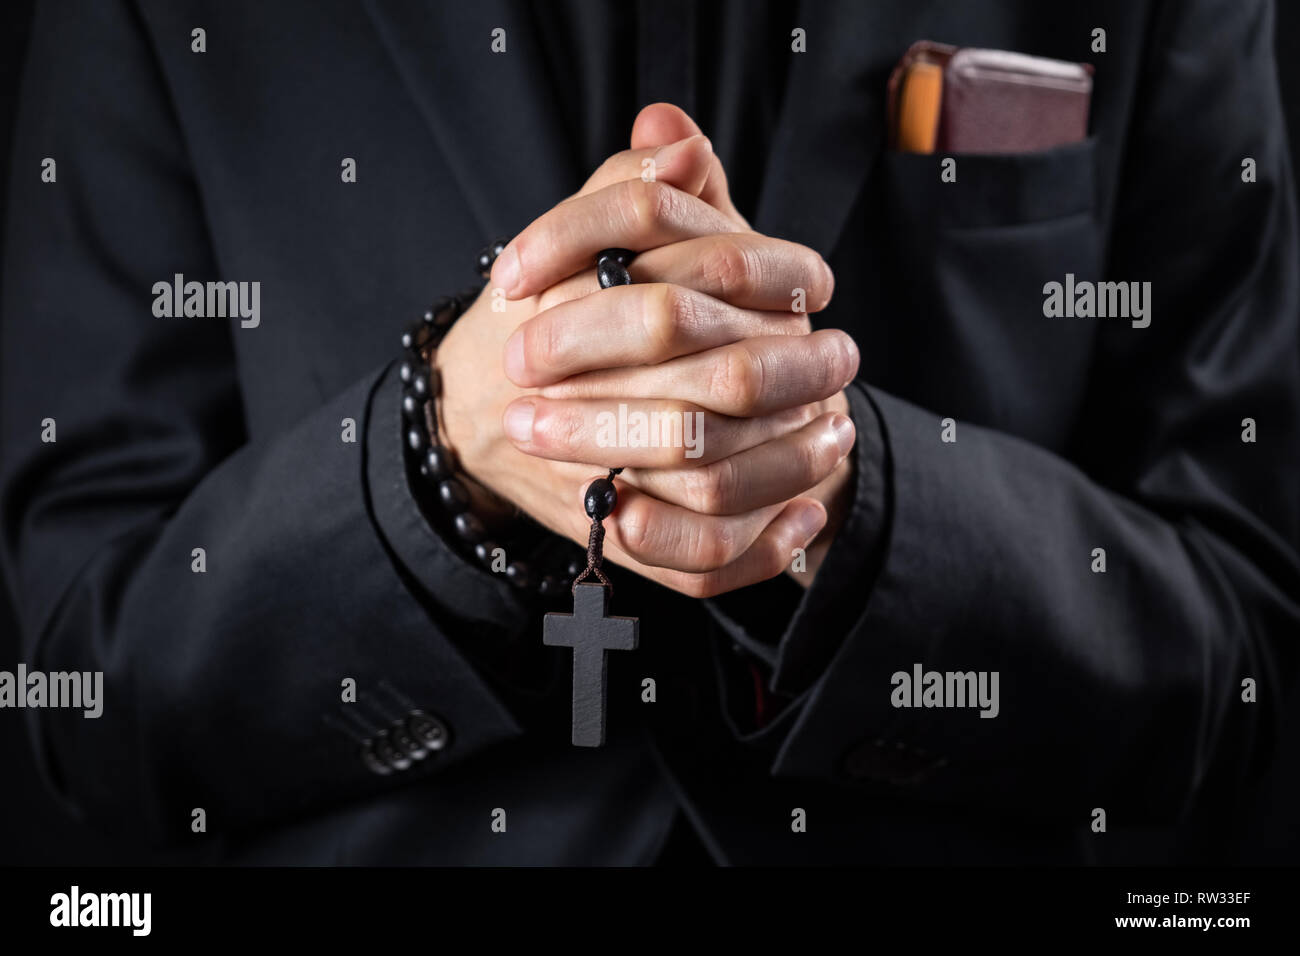 Christian person praying, low key image. Hands of a man in black suit or a priest portraying a preach Stock Photo